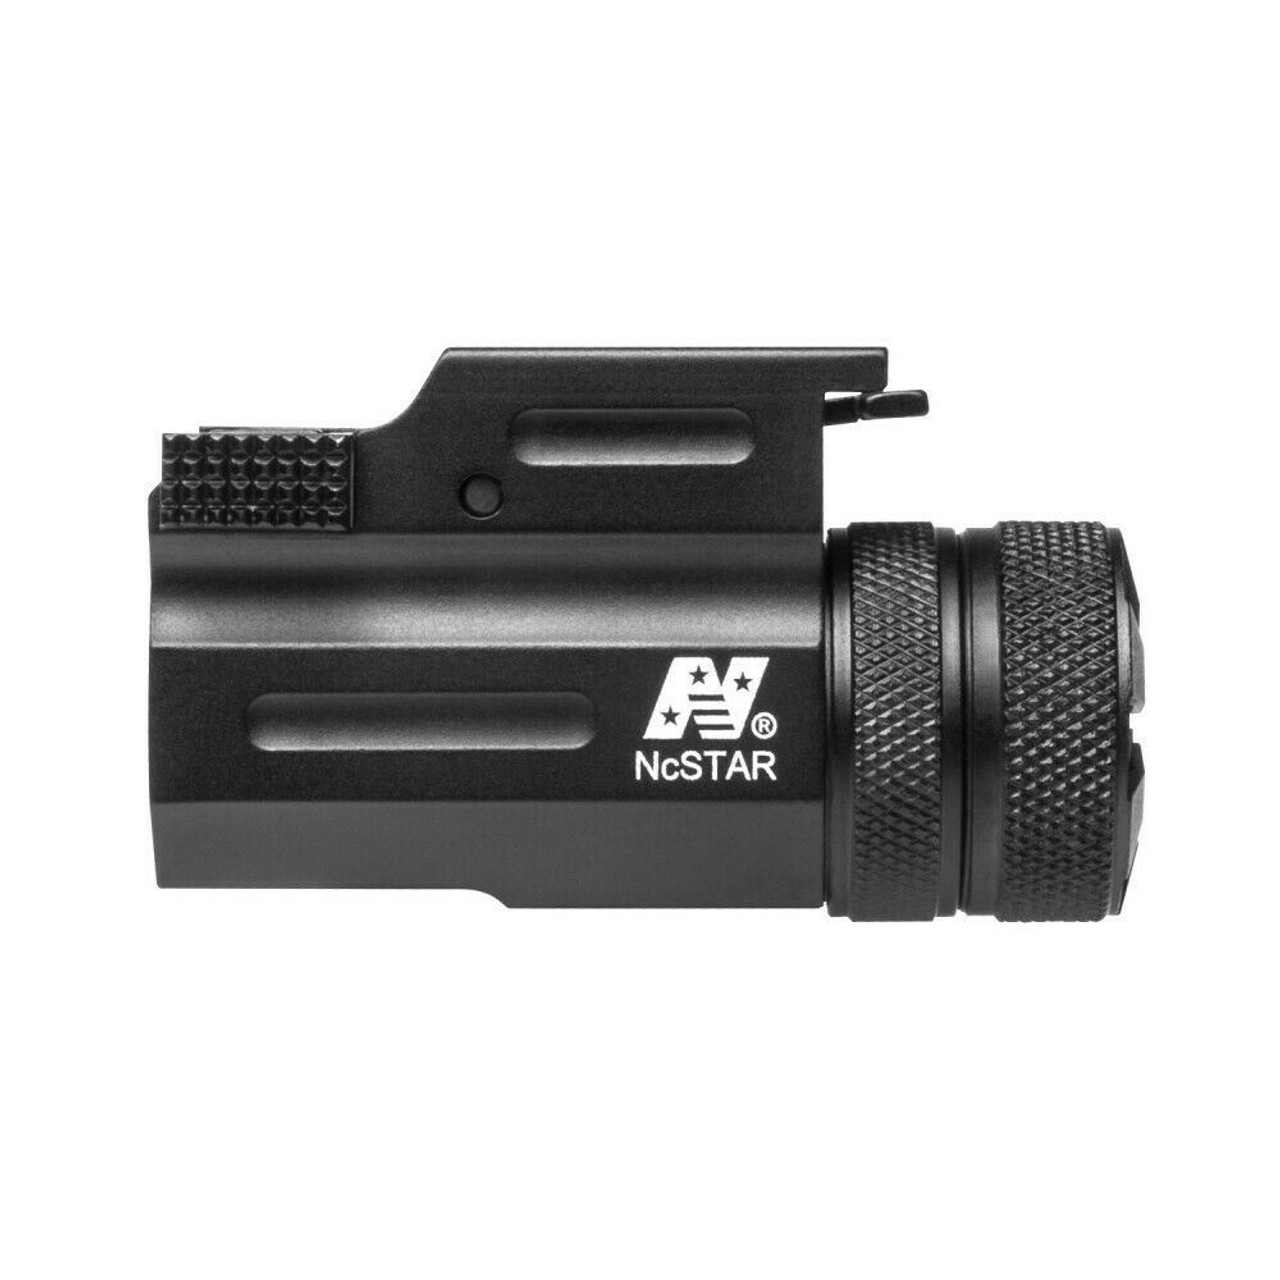 NcSTAR AQPTLMG ULTRA COMPACT GREEN PISTOL LASER WITH QUICK RELEASE WEAVER MOUNT